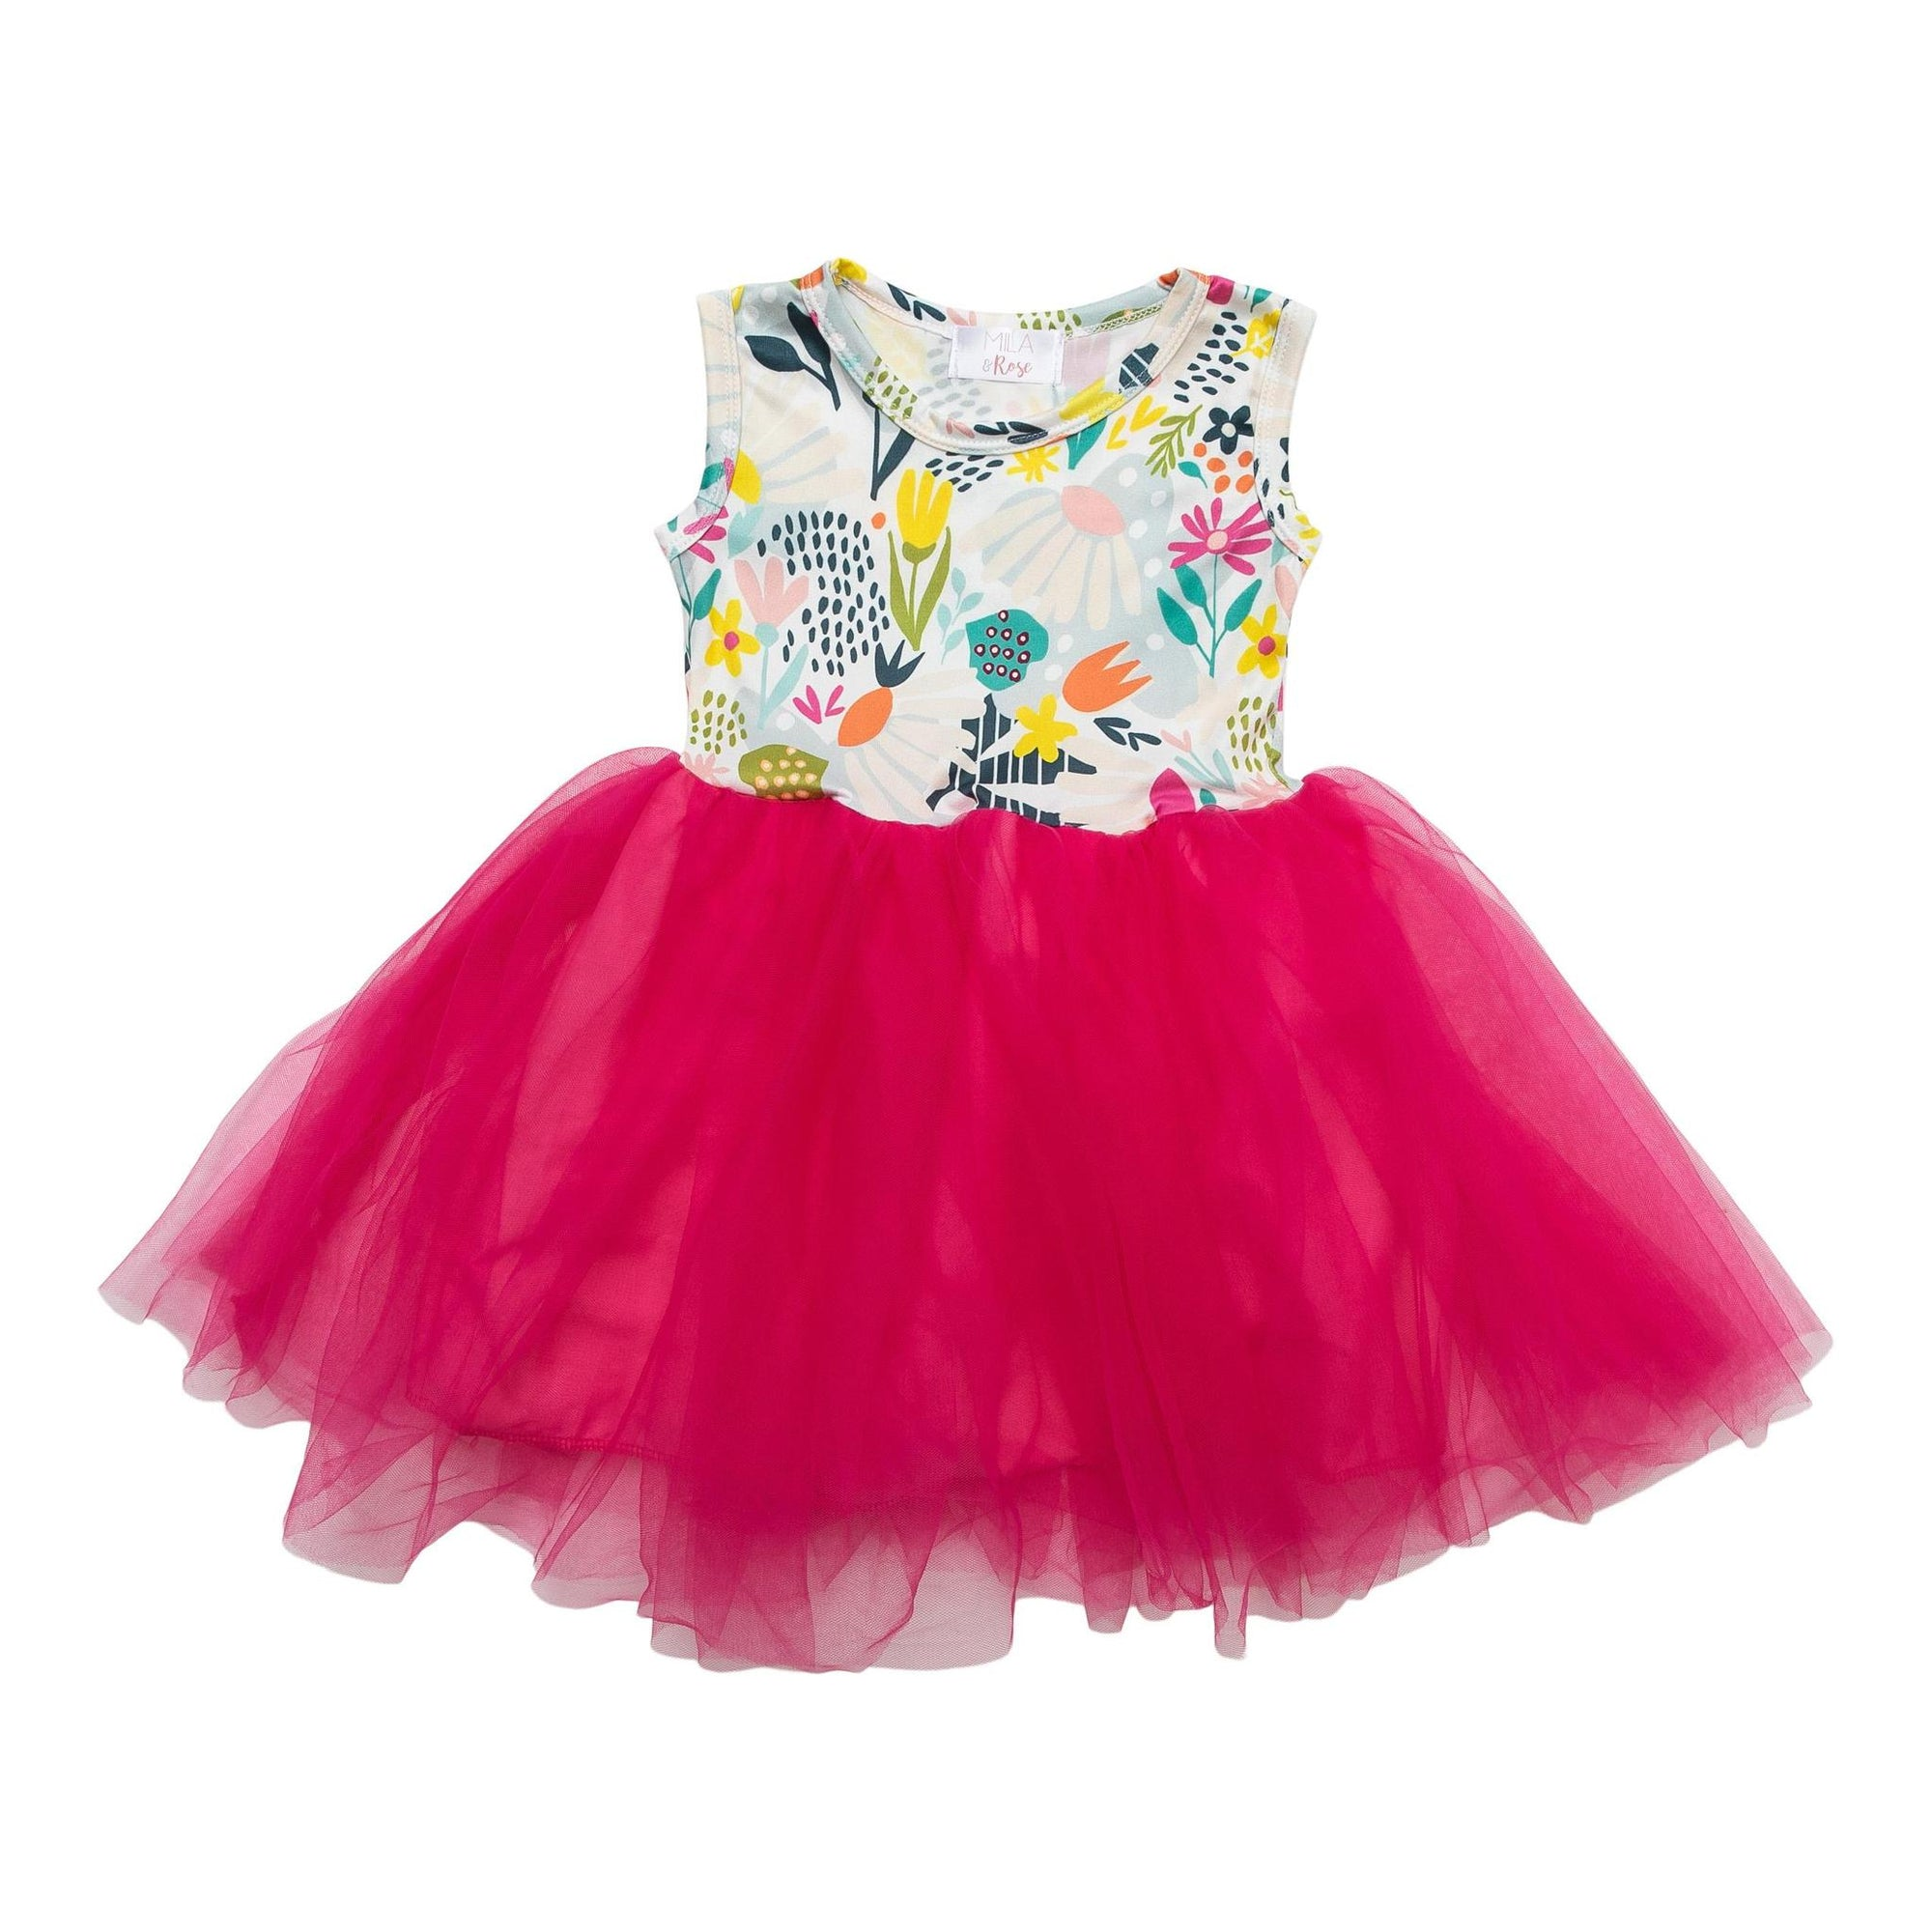 Flower Market Tank Tutu Dress-Mila & Rose ®